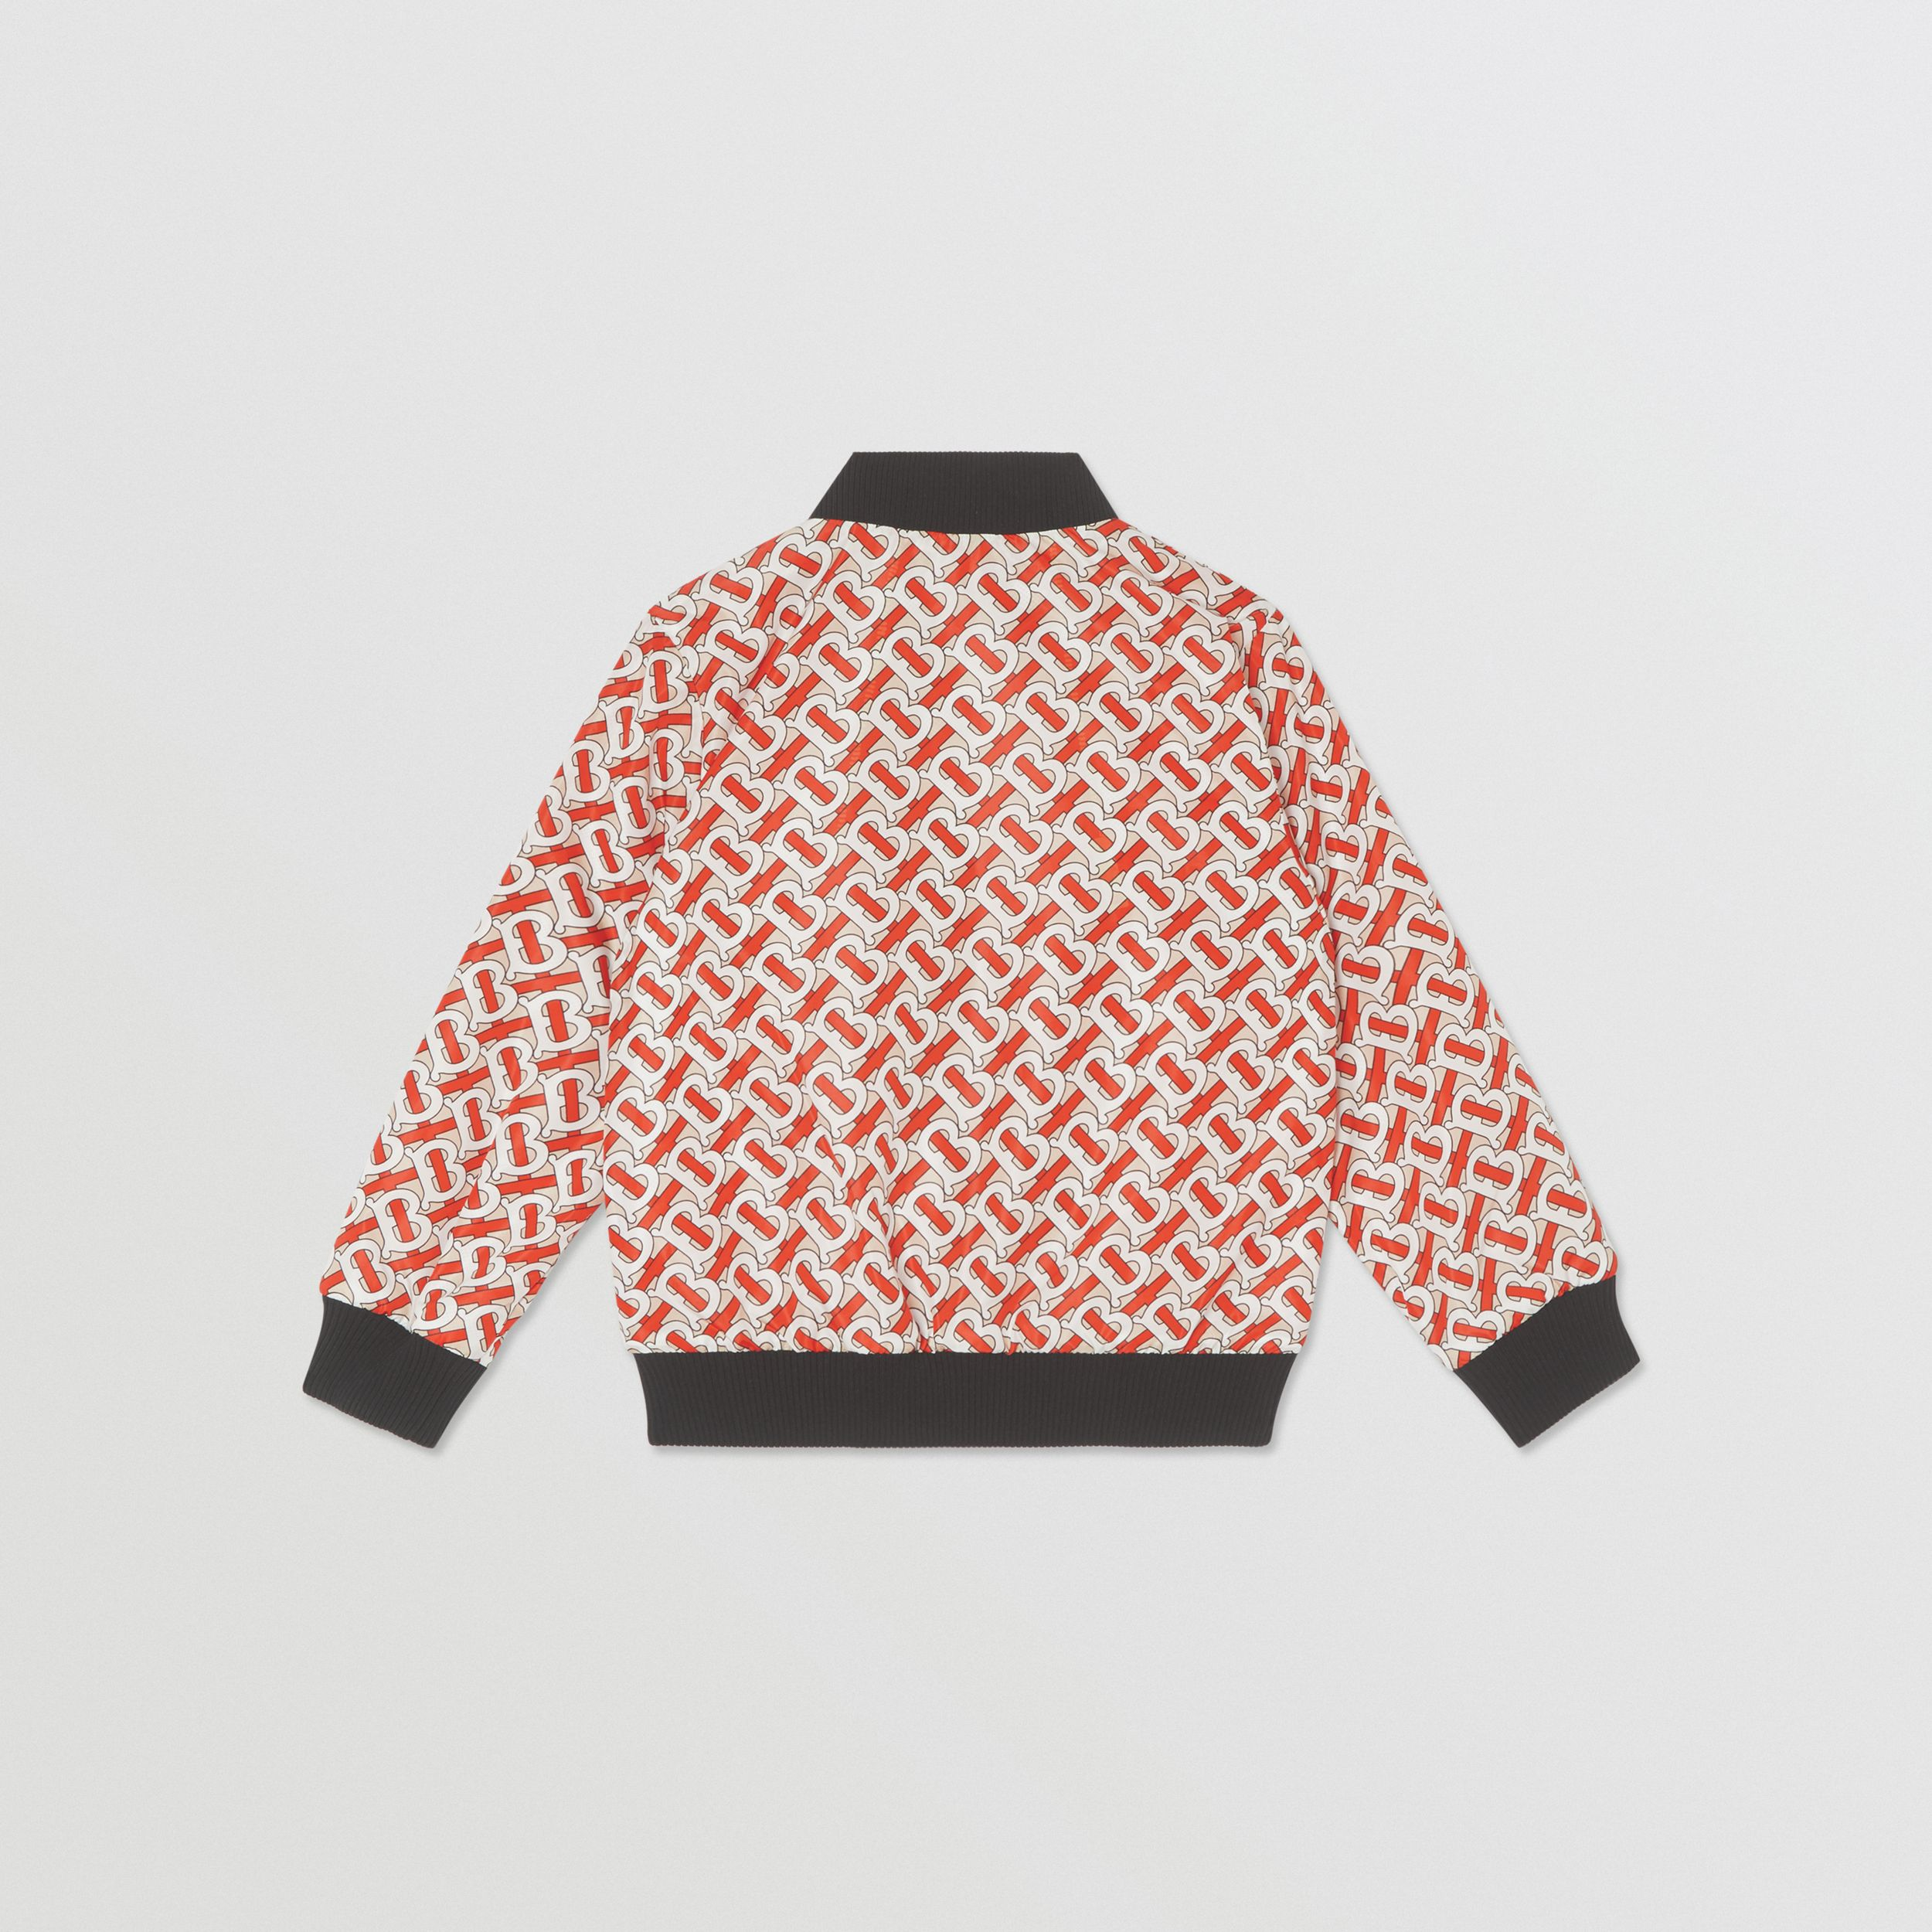 Monogram Print Nylon Bomber Jacket in Vermilion Red | Burberry United Kingdom - 4